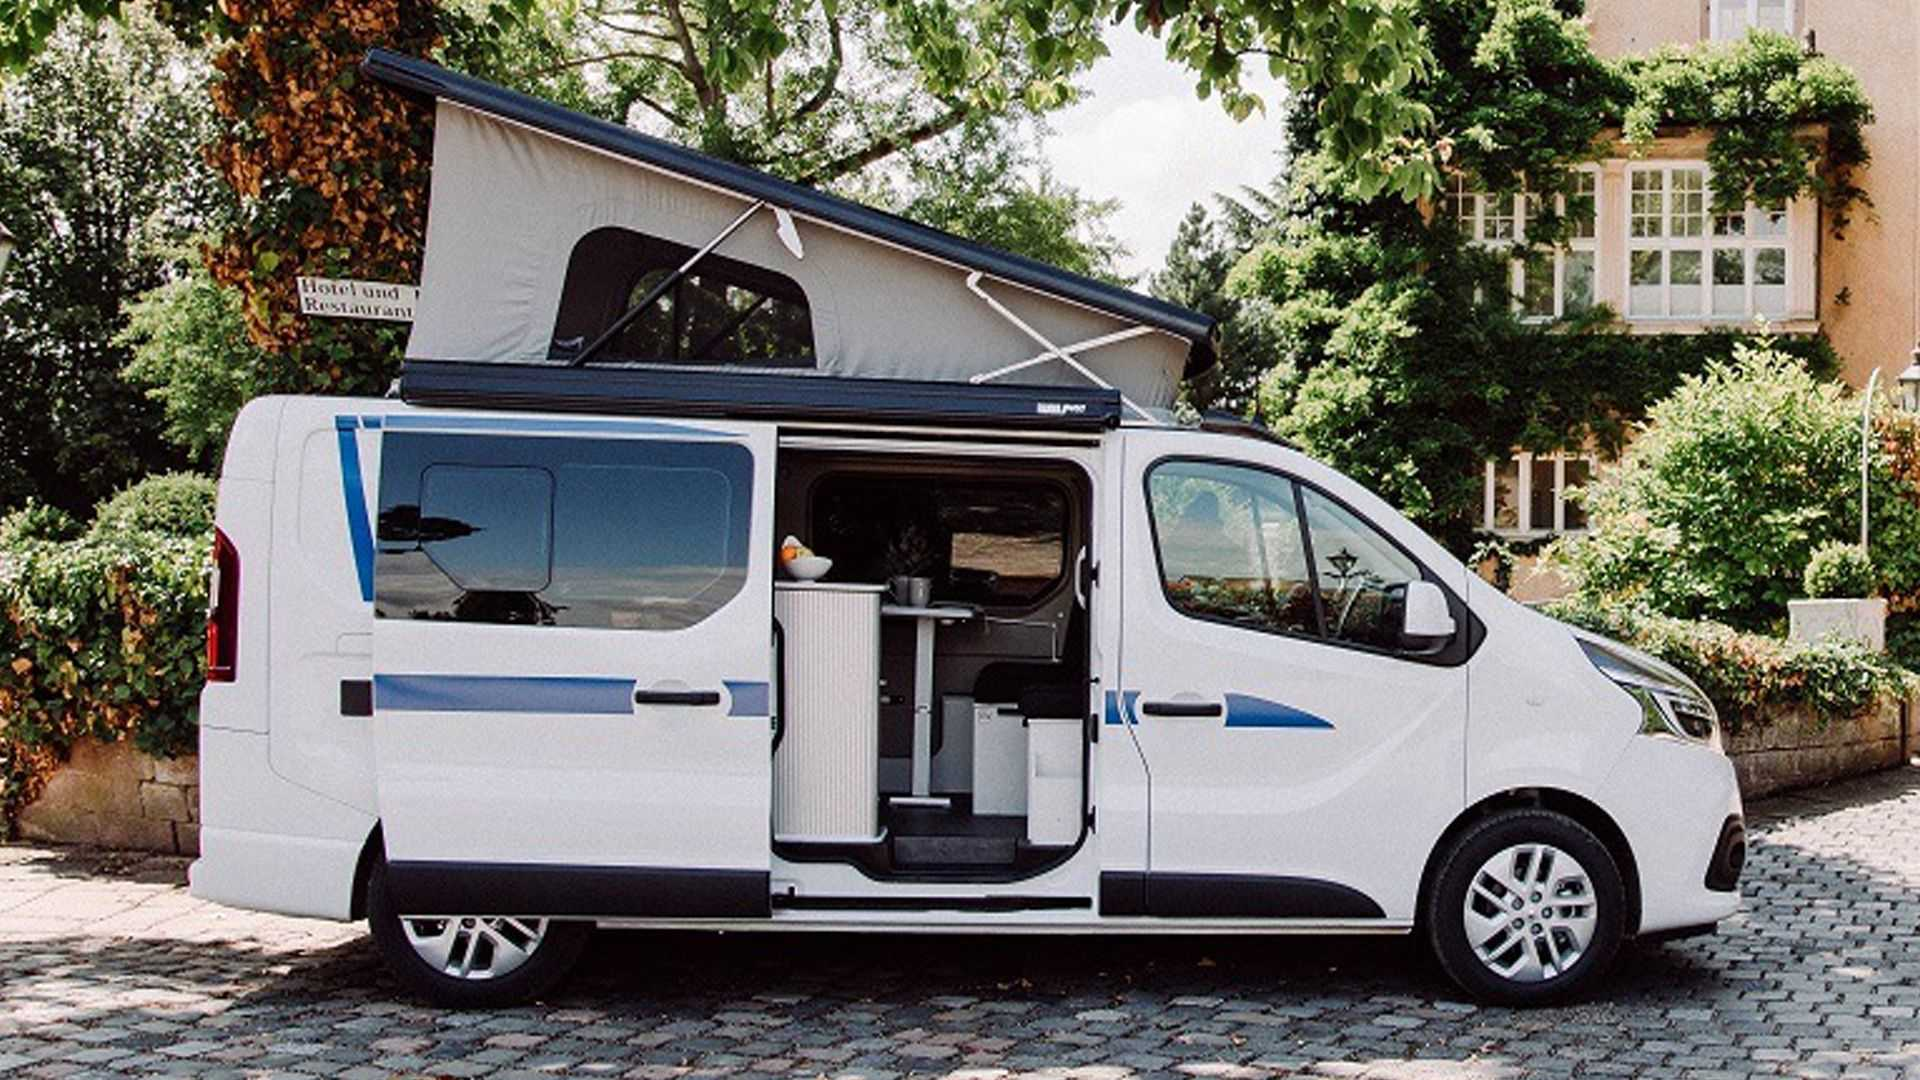 Owning a small and maneuverable motorhome with every modern comfort inside is a dream many RV owners can relate to, as there are always compromises. The Acorn Van Big City is no exception, but it manages to pack plenty of features for what it is.